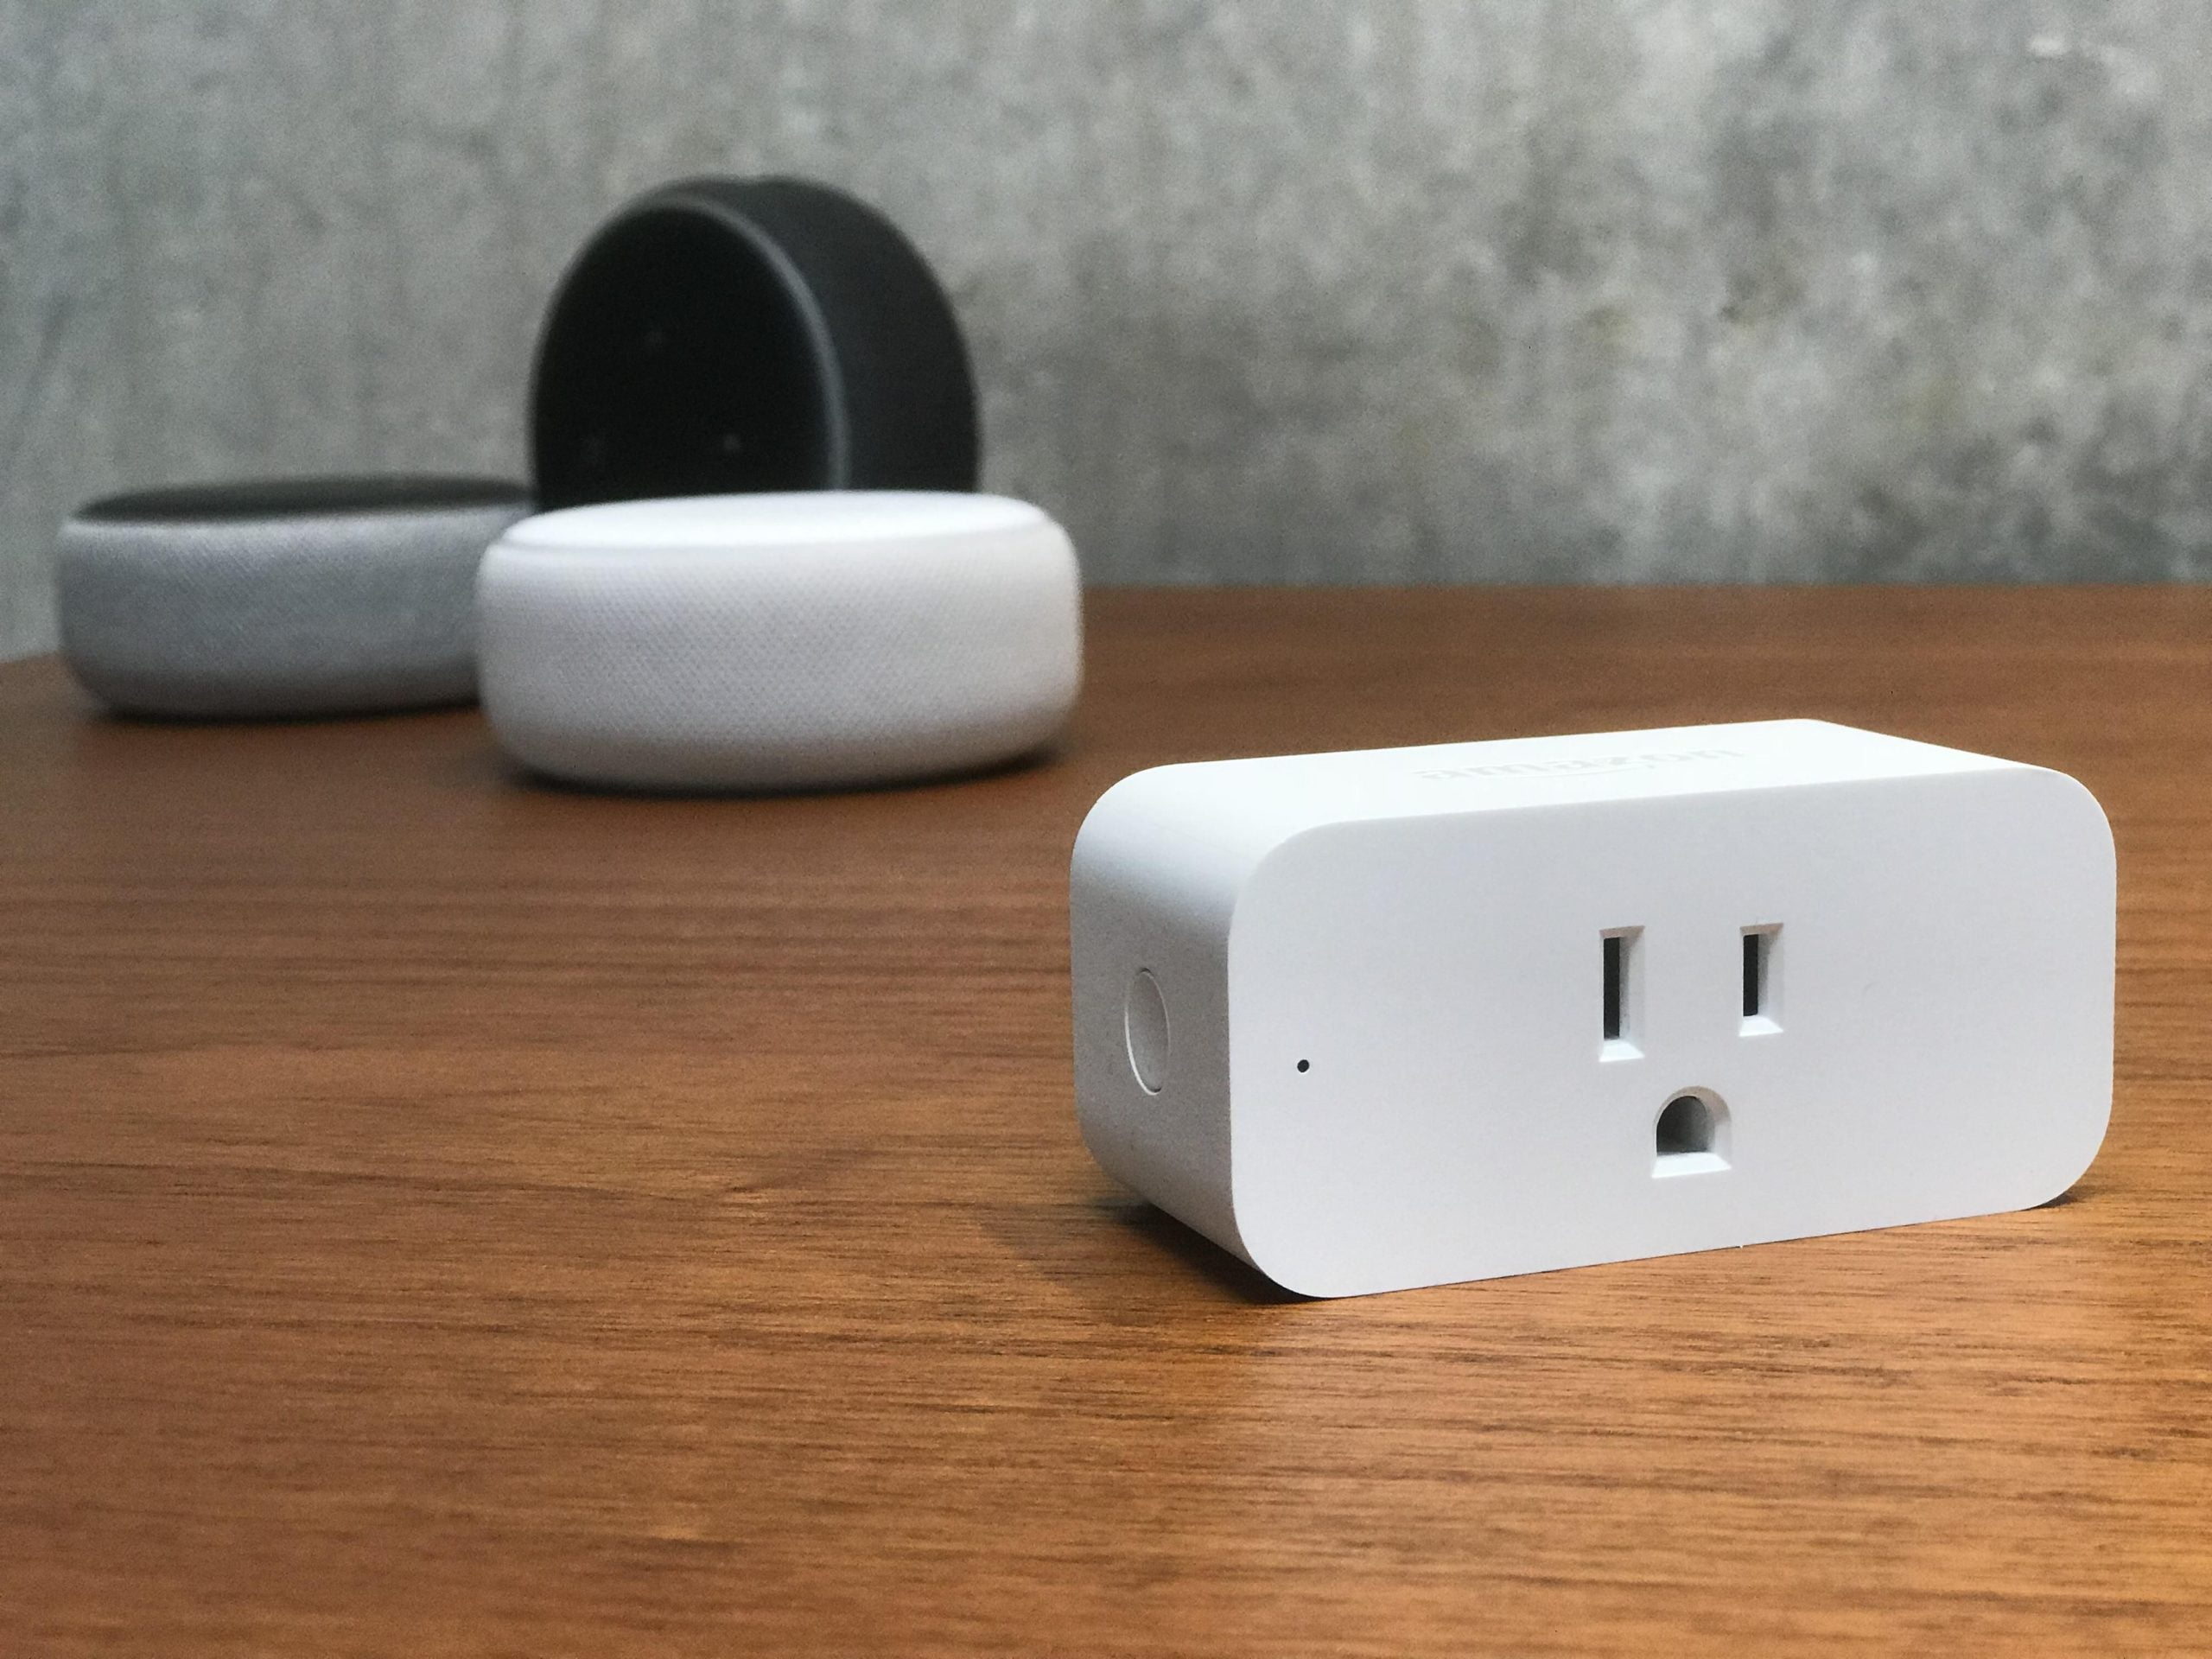 The best smart plugs for 2020